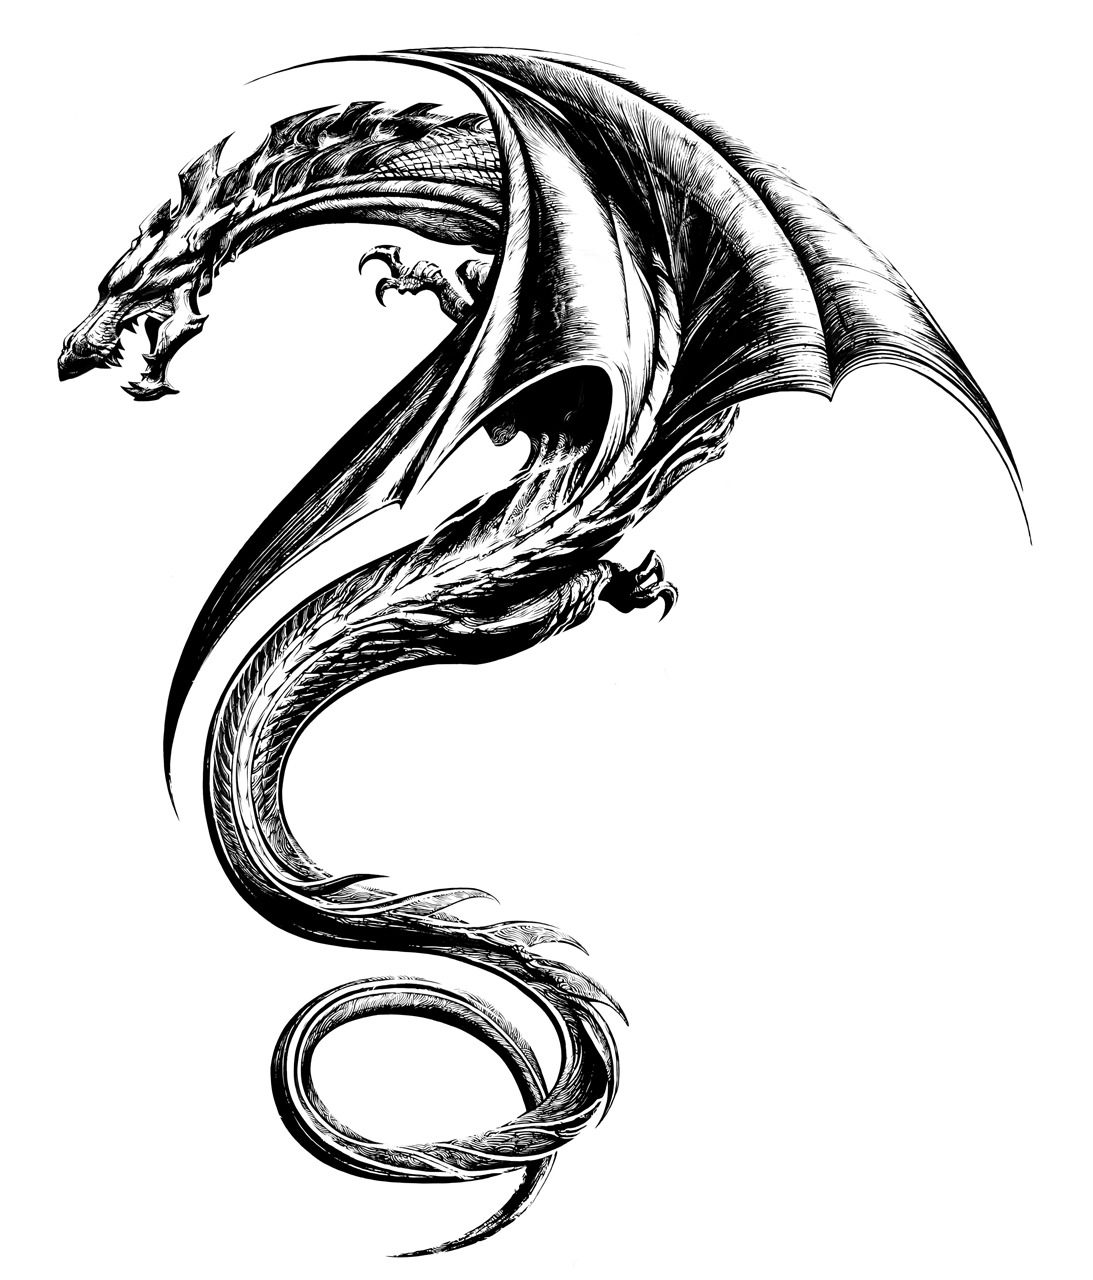 Dragon Tattoos: 60 Awesome Dragon Tattoo Designs For Men